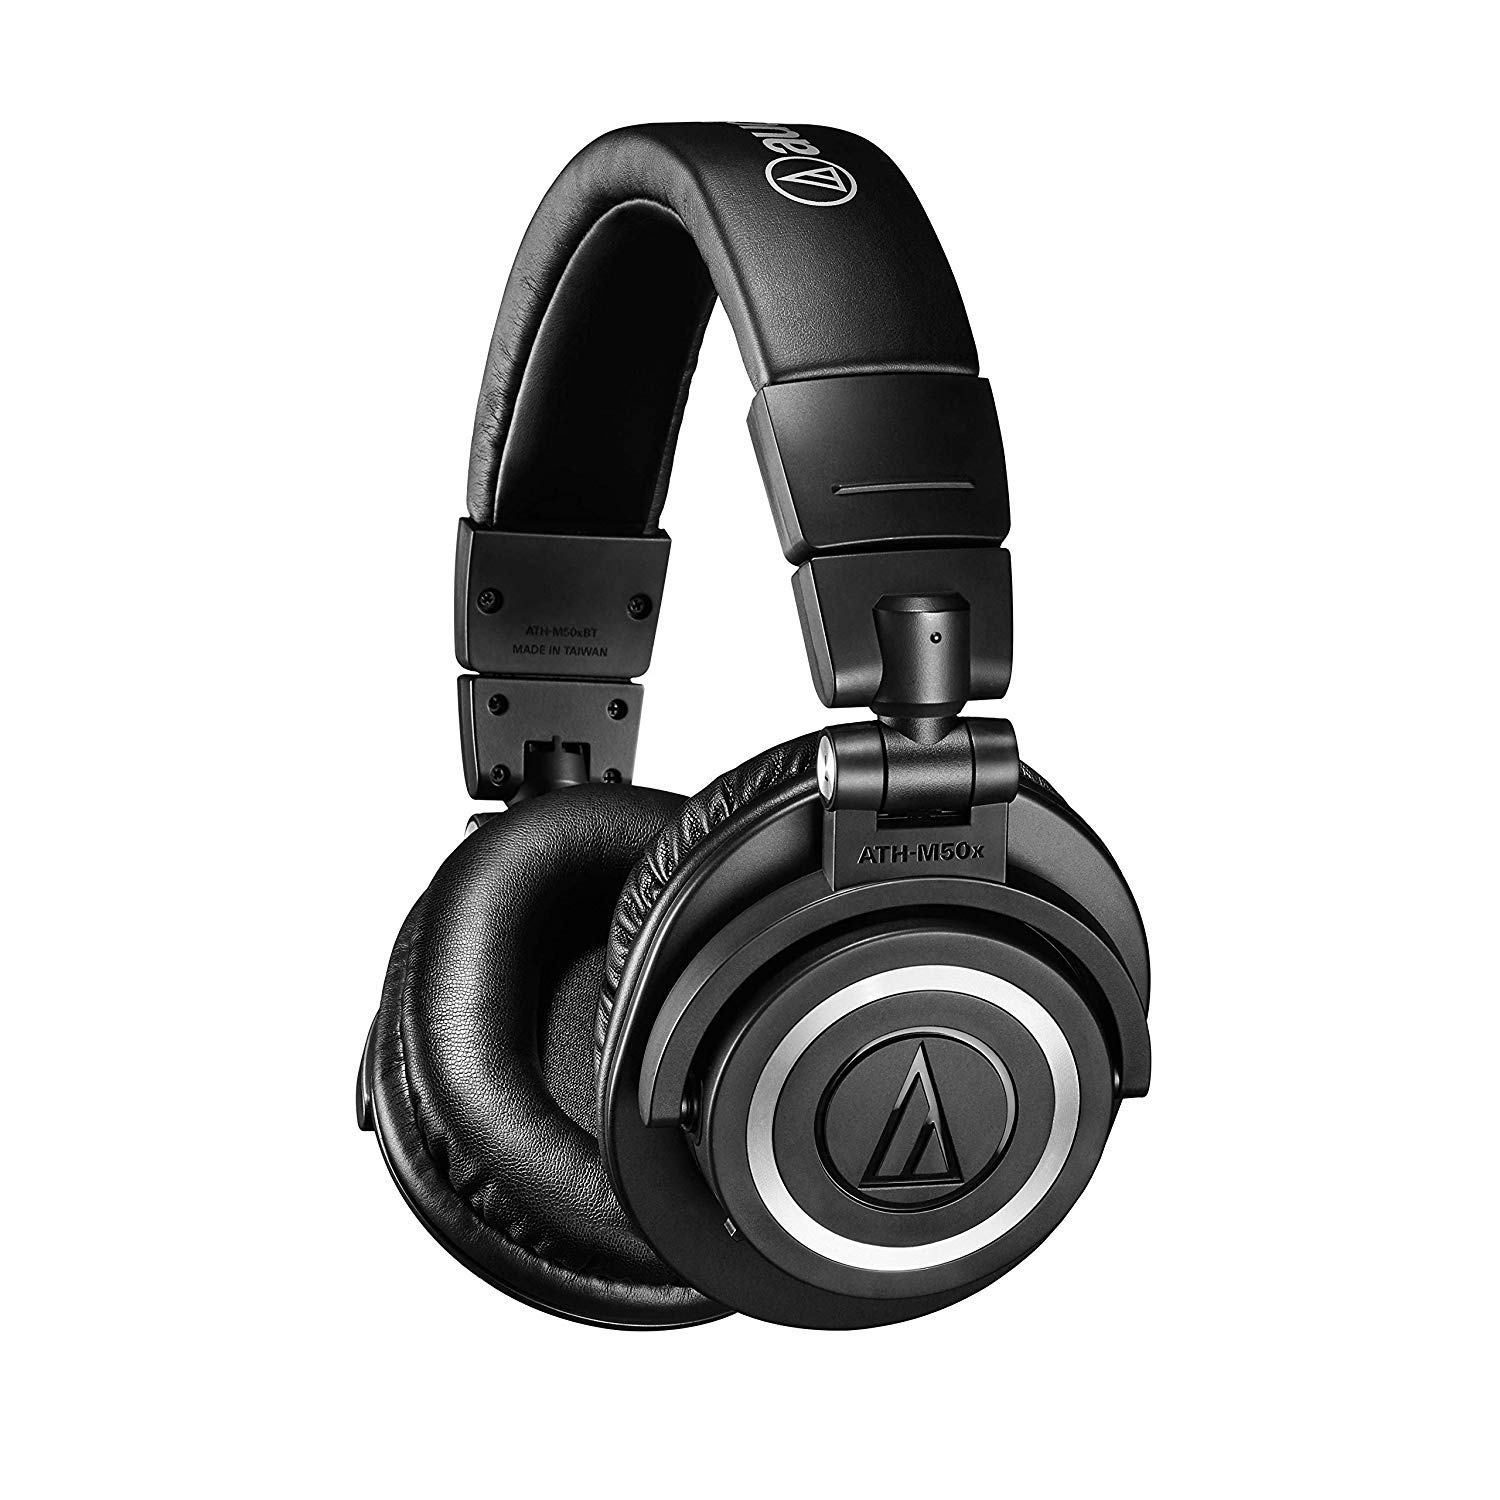 Audio-Technica ATH-M50xBT Wireless Bluetooth Over-Ear Headphones, Black by Audio-Technica